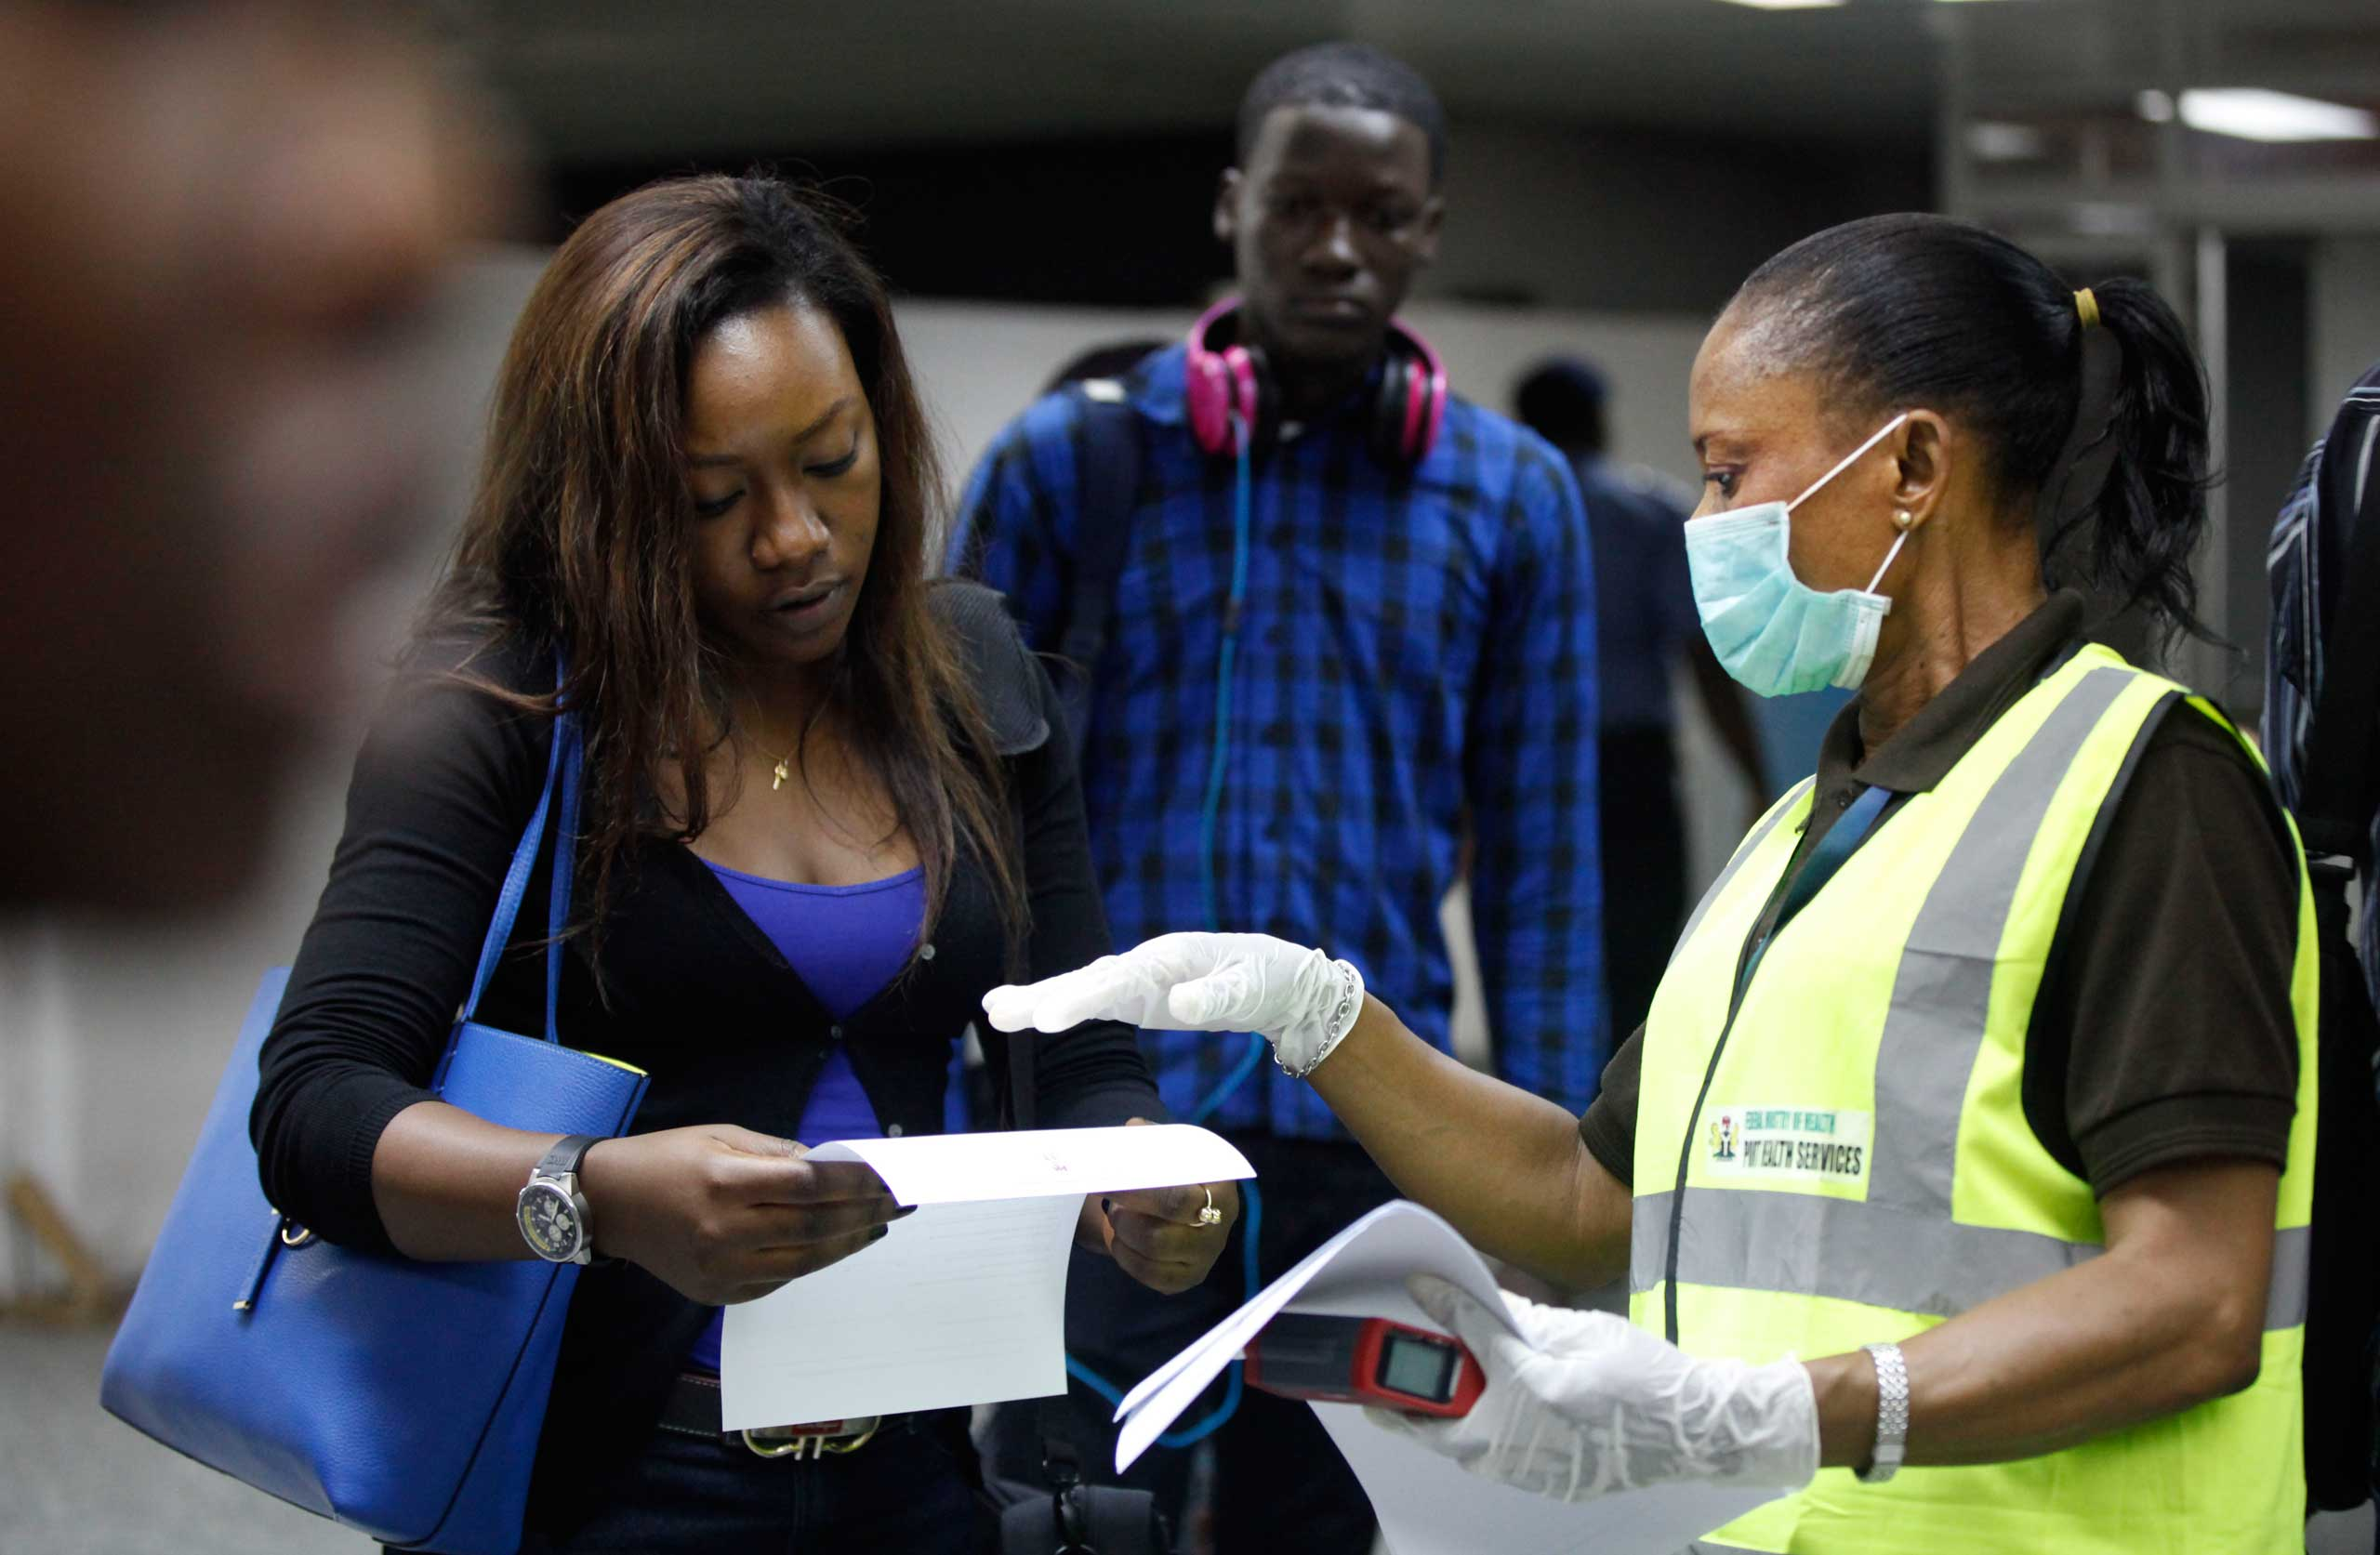 A Nigerian port health official speaks to a passenger at the arrivals hall of Murtala Muhammed International Airport in Lagos, Nigeria, Aug. 6, 2014.